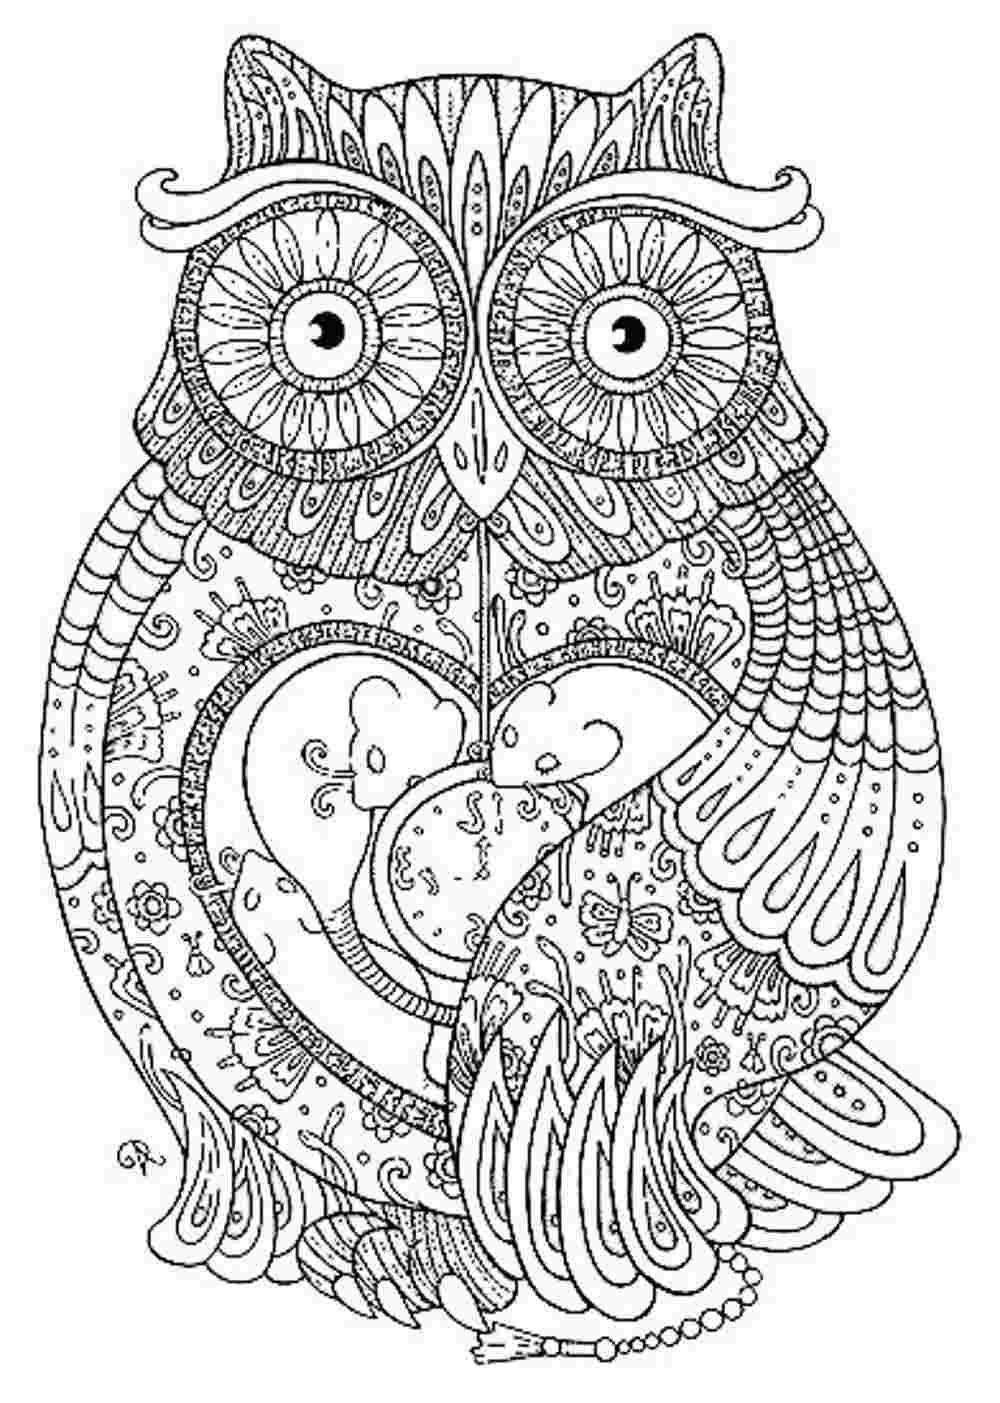 Animal mandala coloring pages to download and print for ... | free printable animal mandala coloring pages for adults